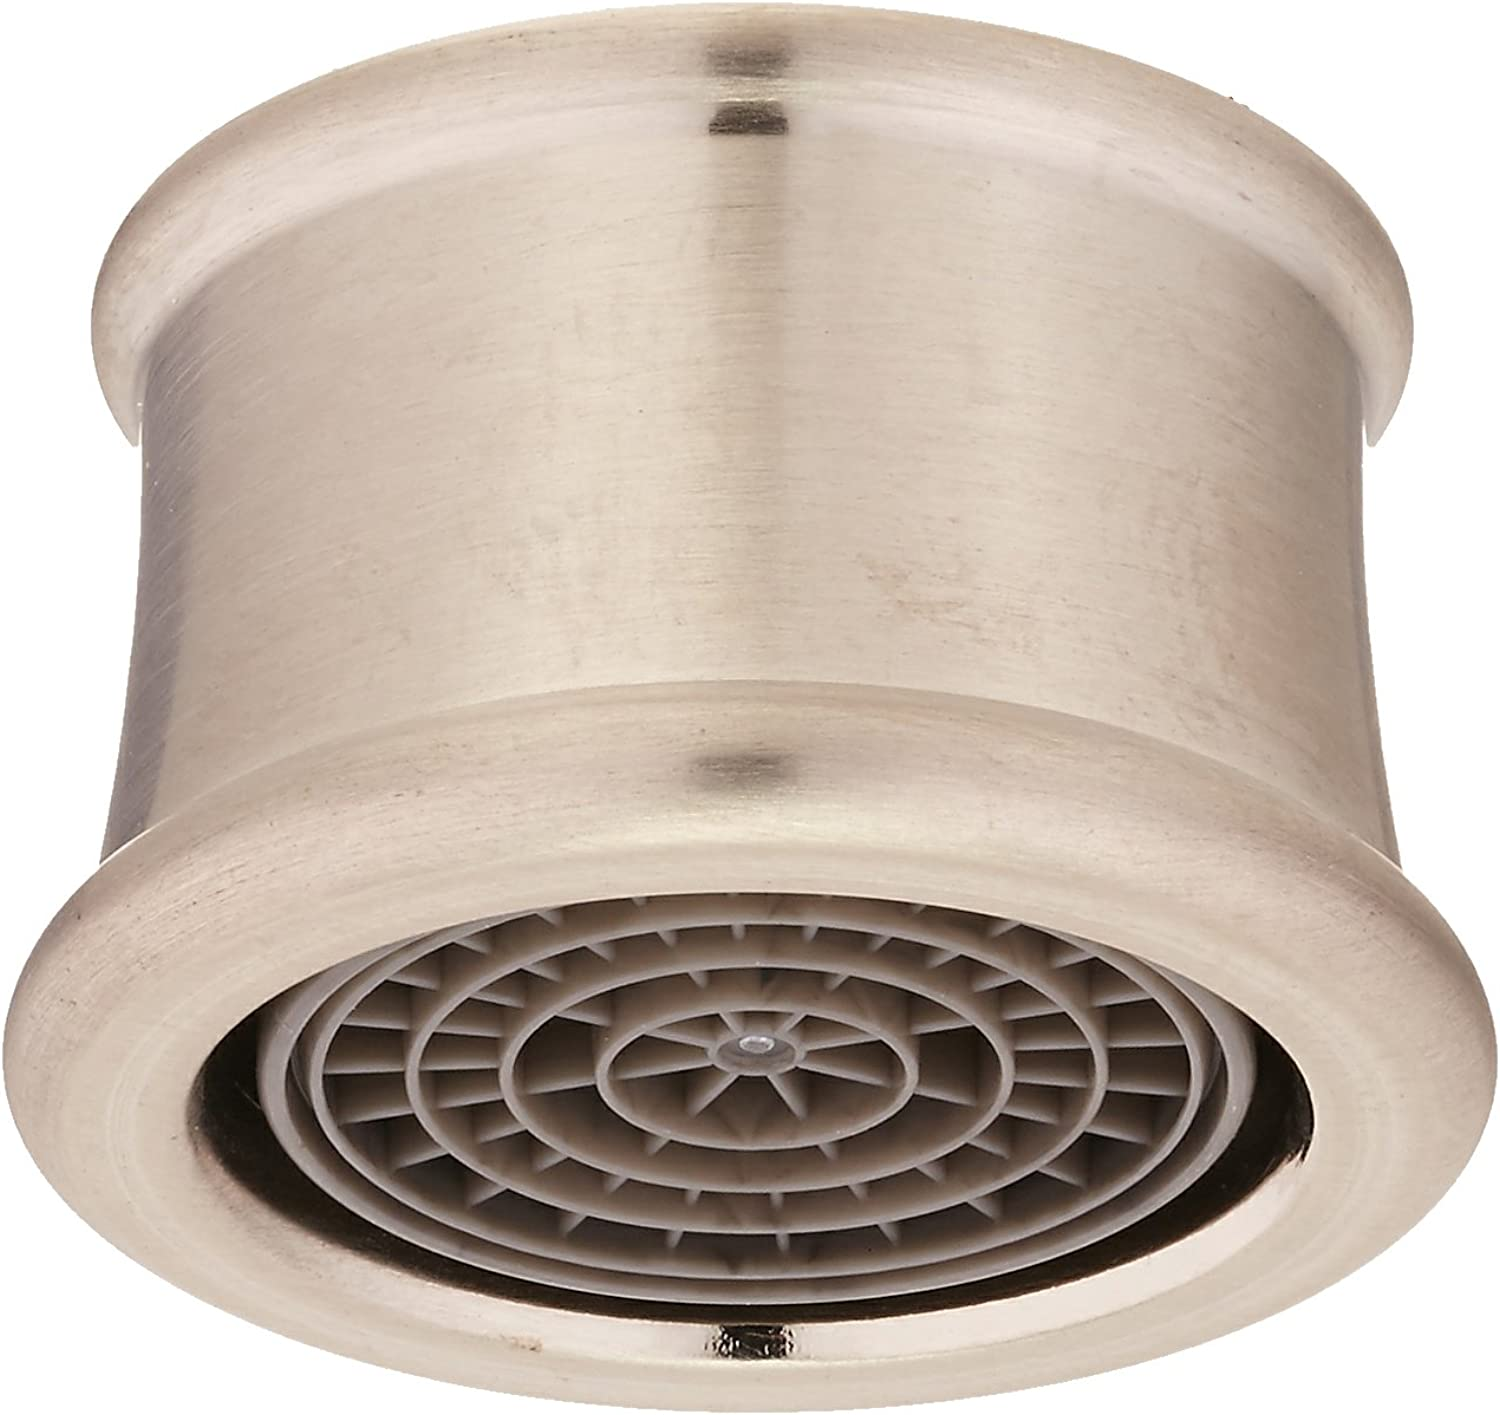 CISAL AERATORCOMPLETE IN SATIN NICKEL FOR AC109